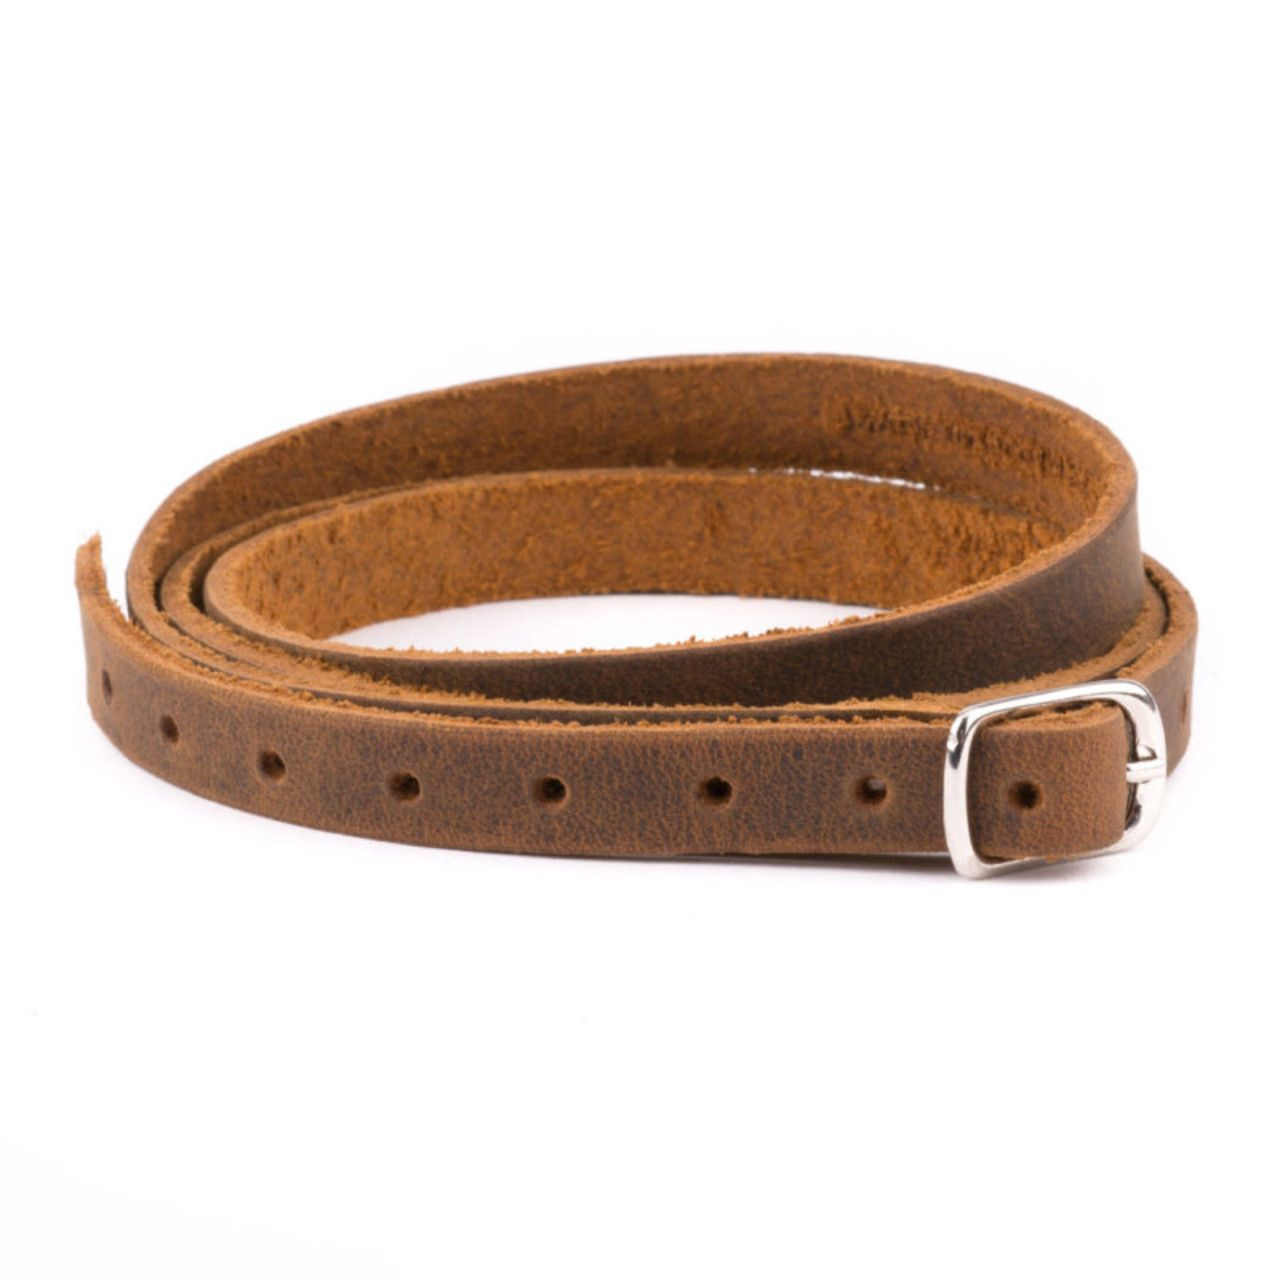 Leather Infinity Wrap Bracelet in tobacco